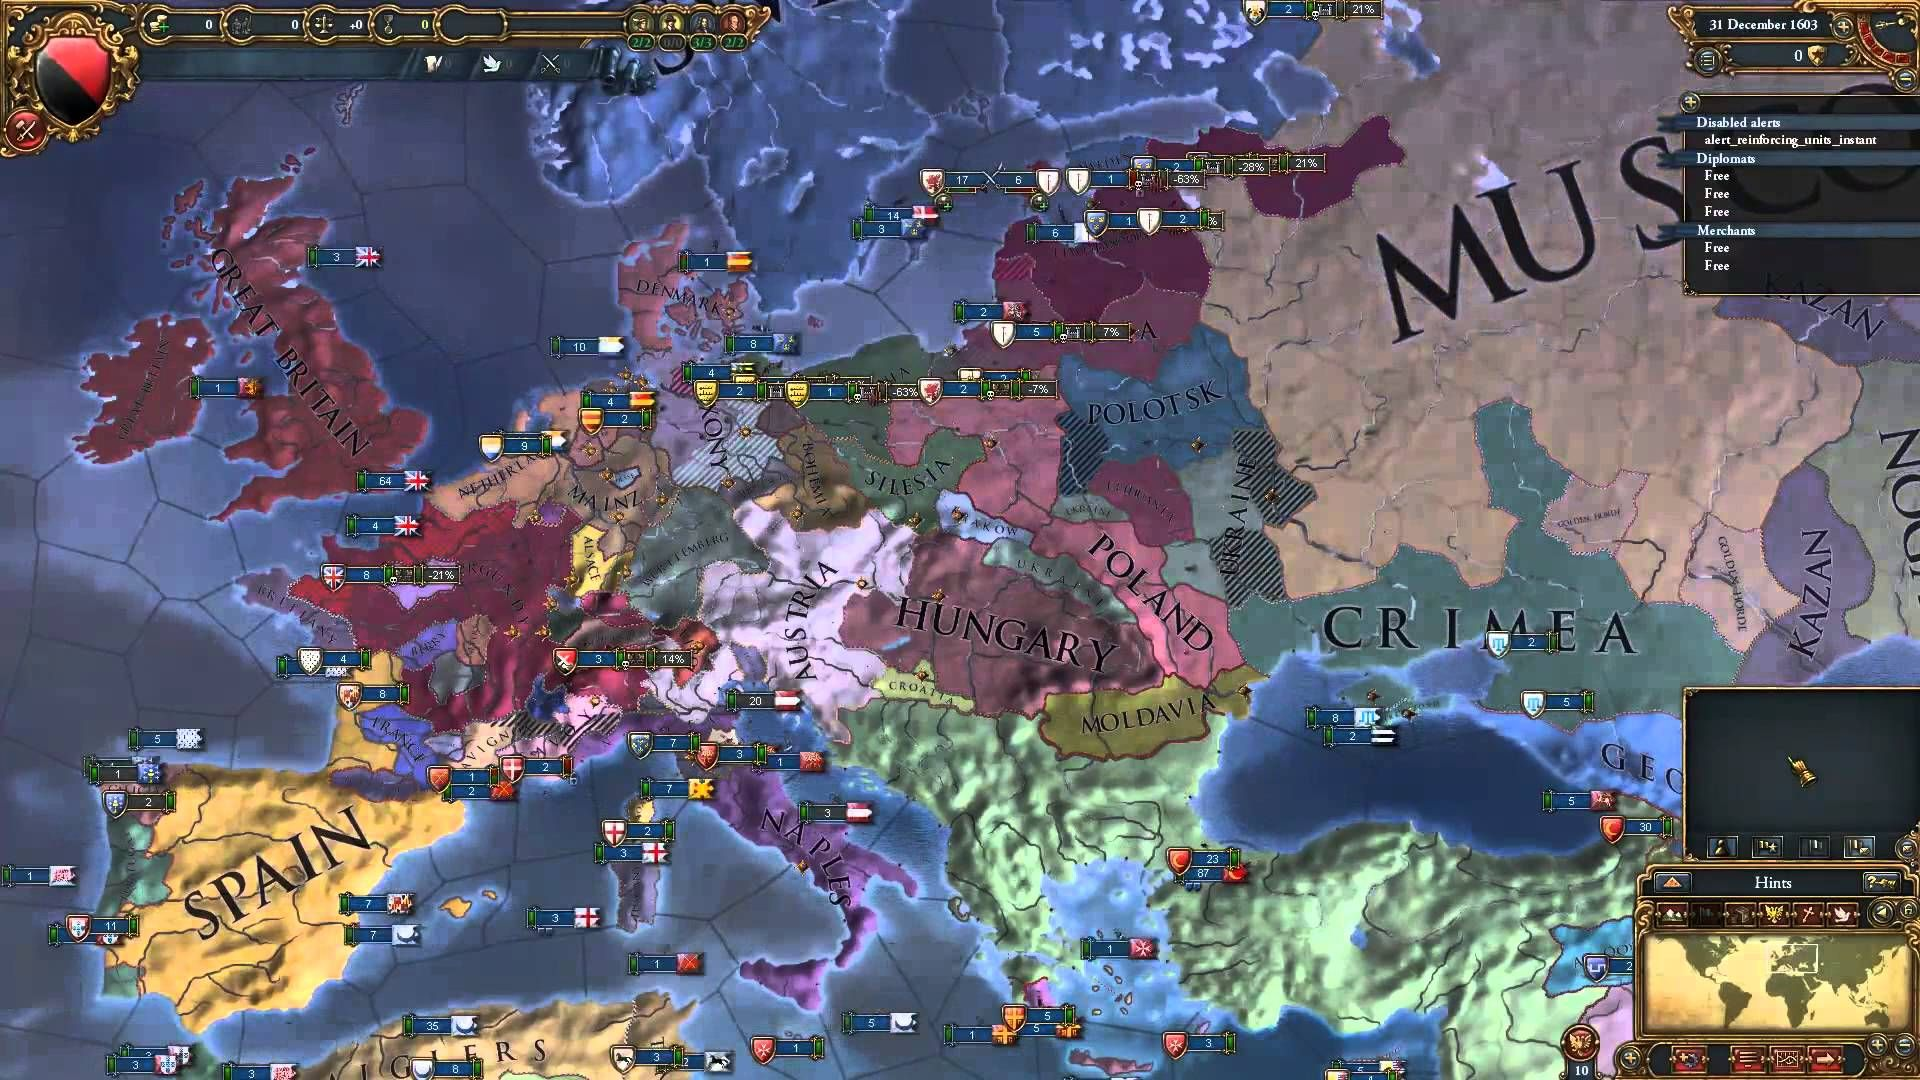 Europa universalis 4 free download pc games pc game download europa universalis 4 free download pc games gumiabroncs Image collections